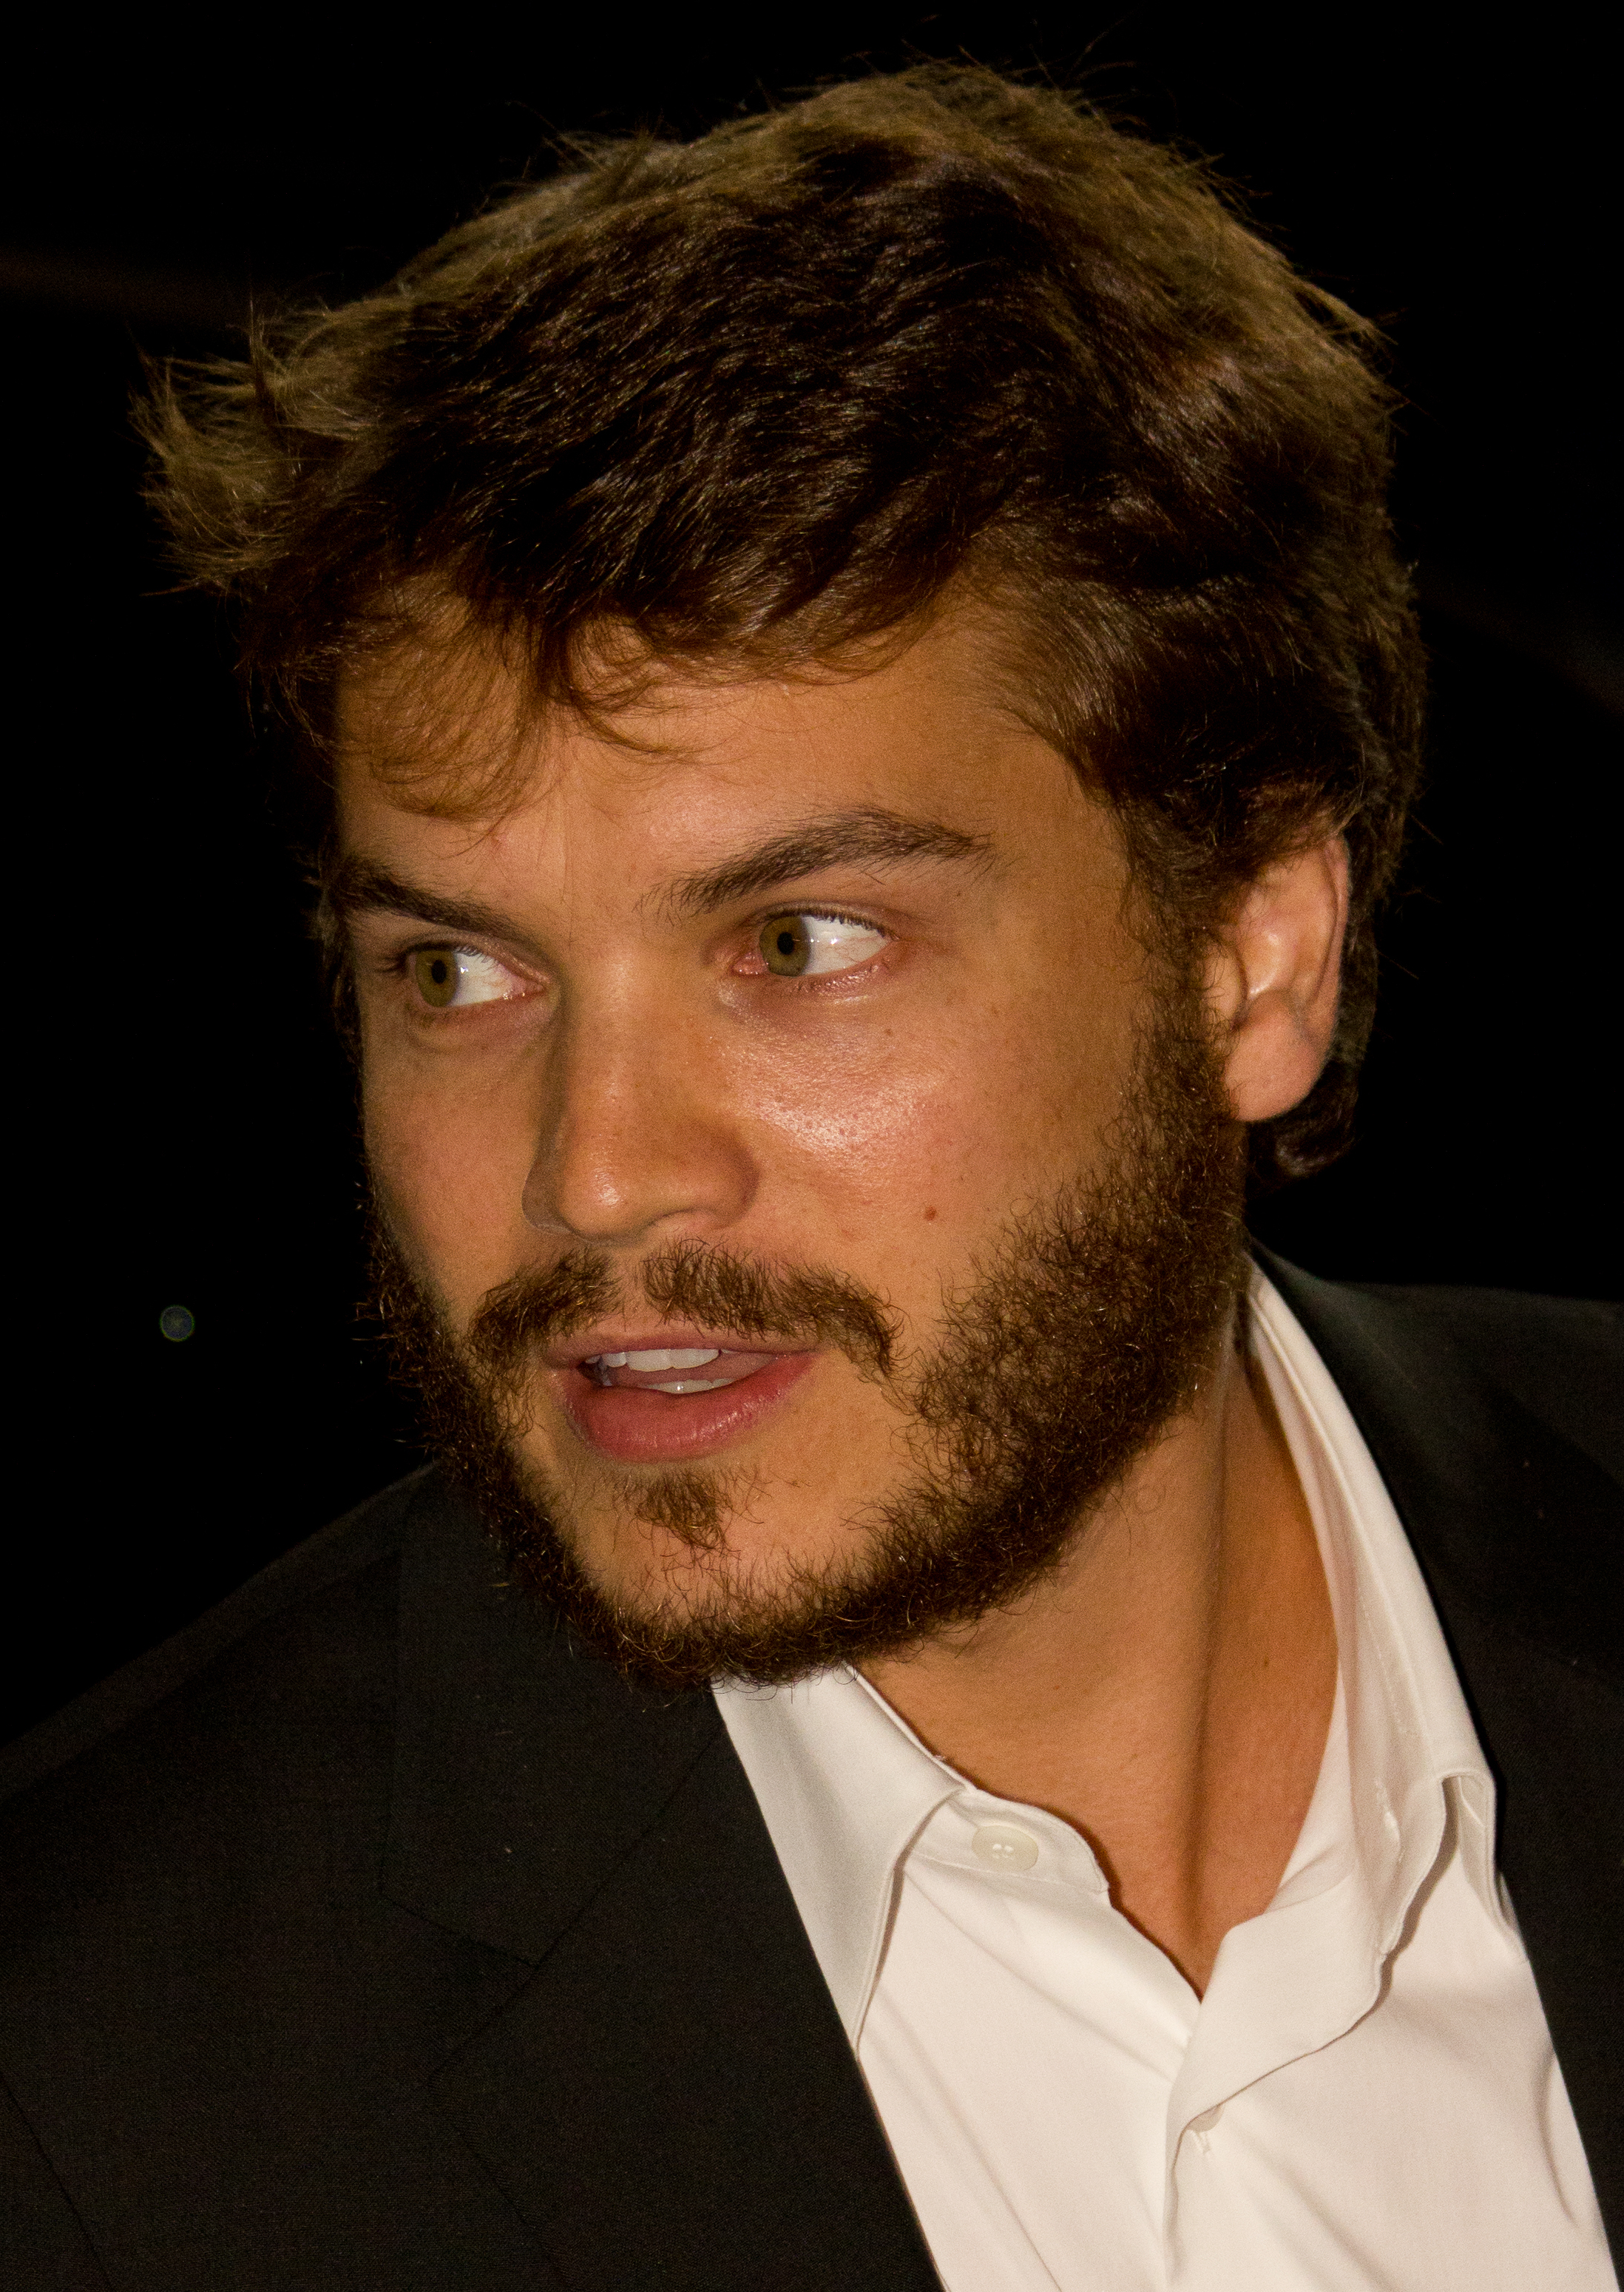 The 33-year old son of father David M. Hirsch and mother Margaret Esther Davenport Emile Hirsch in 2018 photo. Emile Hirsch earned a  million dollar salary - leaving the net worth at 15 million in 2018